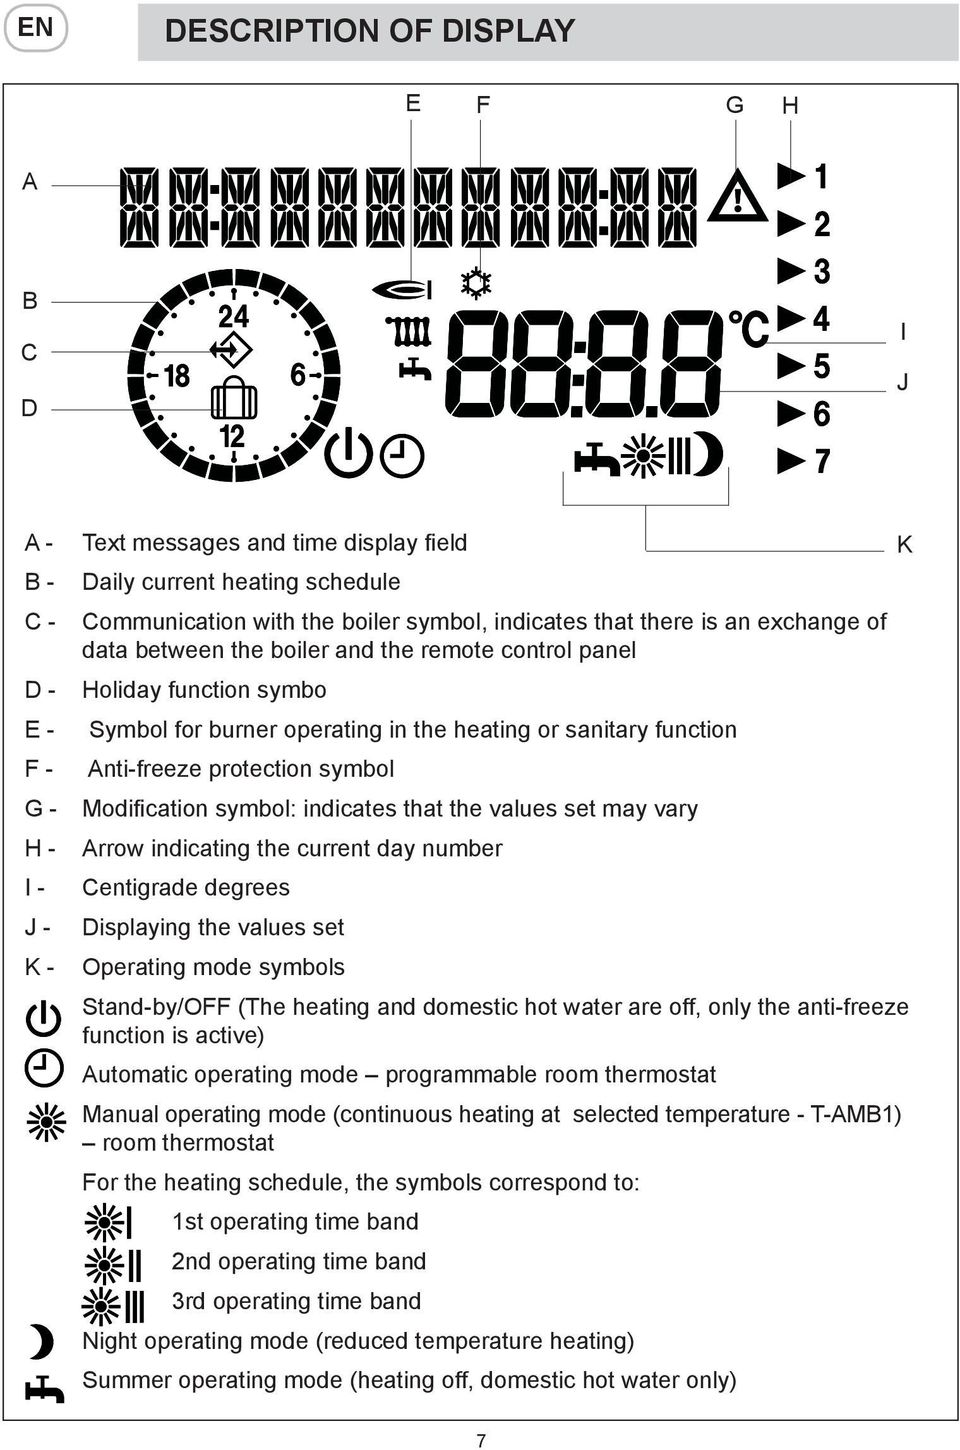 protection symbol Modification symbol: indicates that the values set may vary Arrow indicating the current day number Centigrade degrees Displaying the values set Operating mode symbols Stand-by/OFF